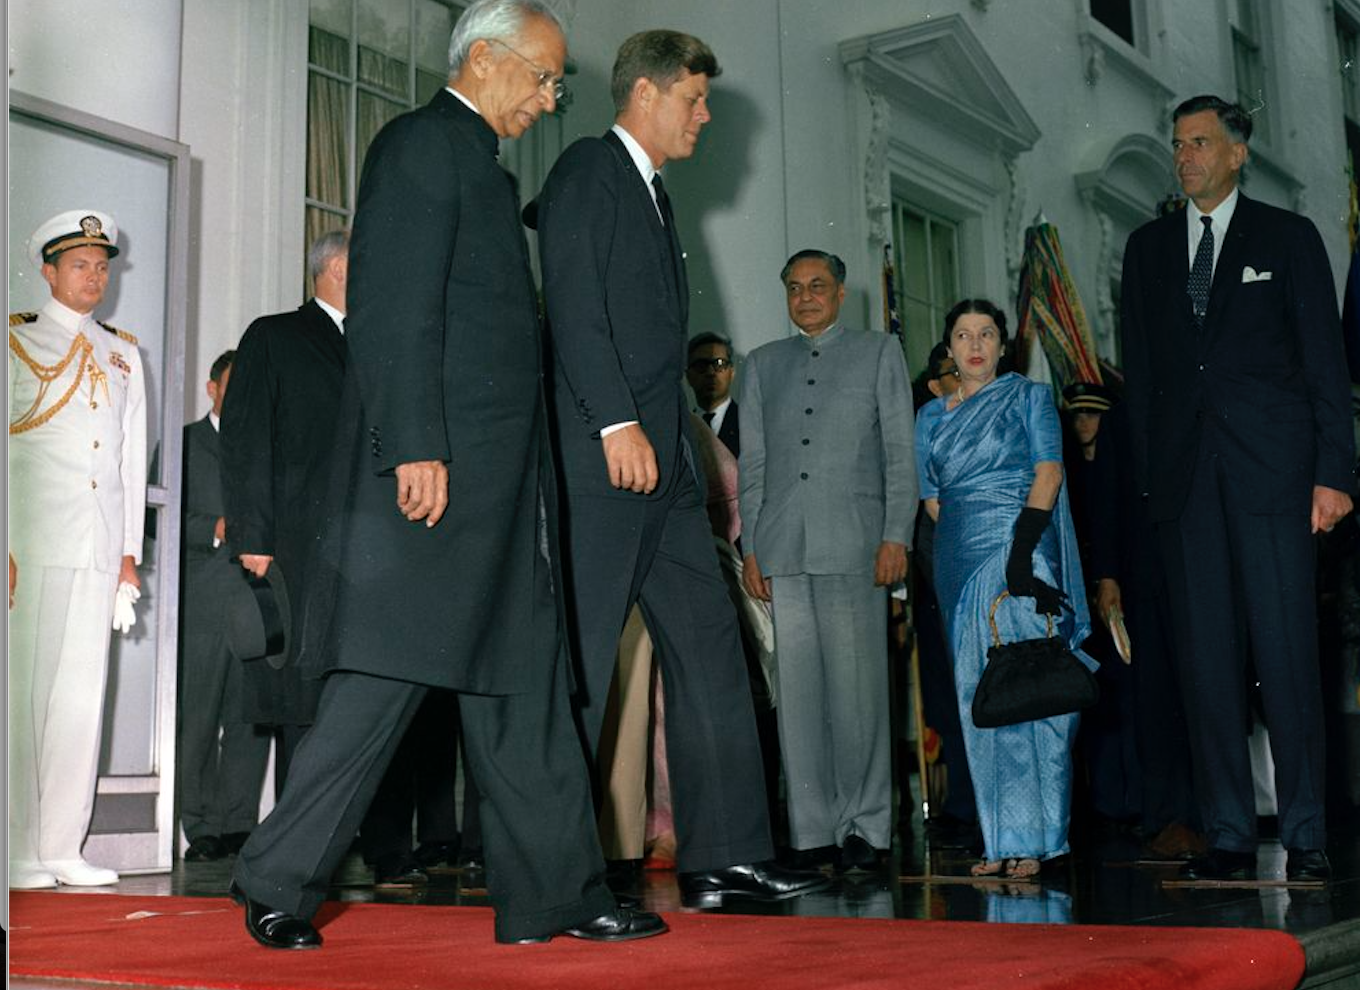 Shobha Nehru and John F. Kennedy